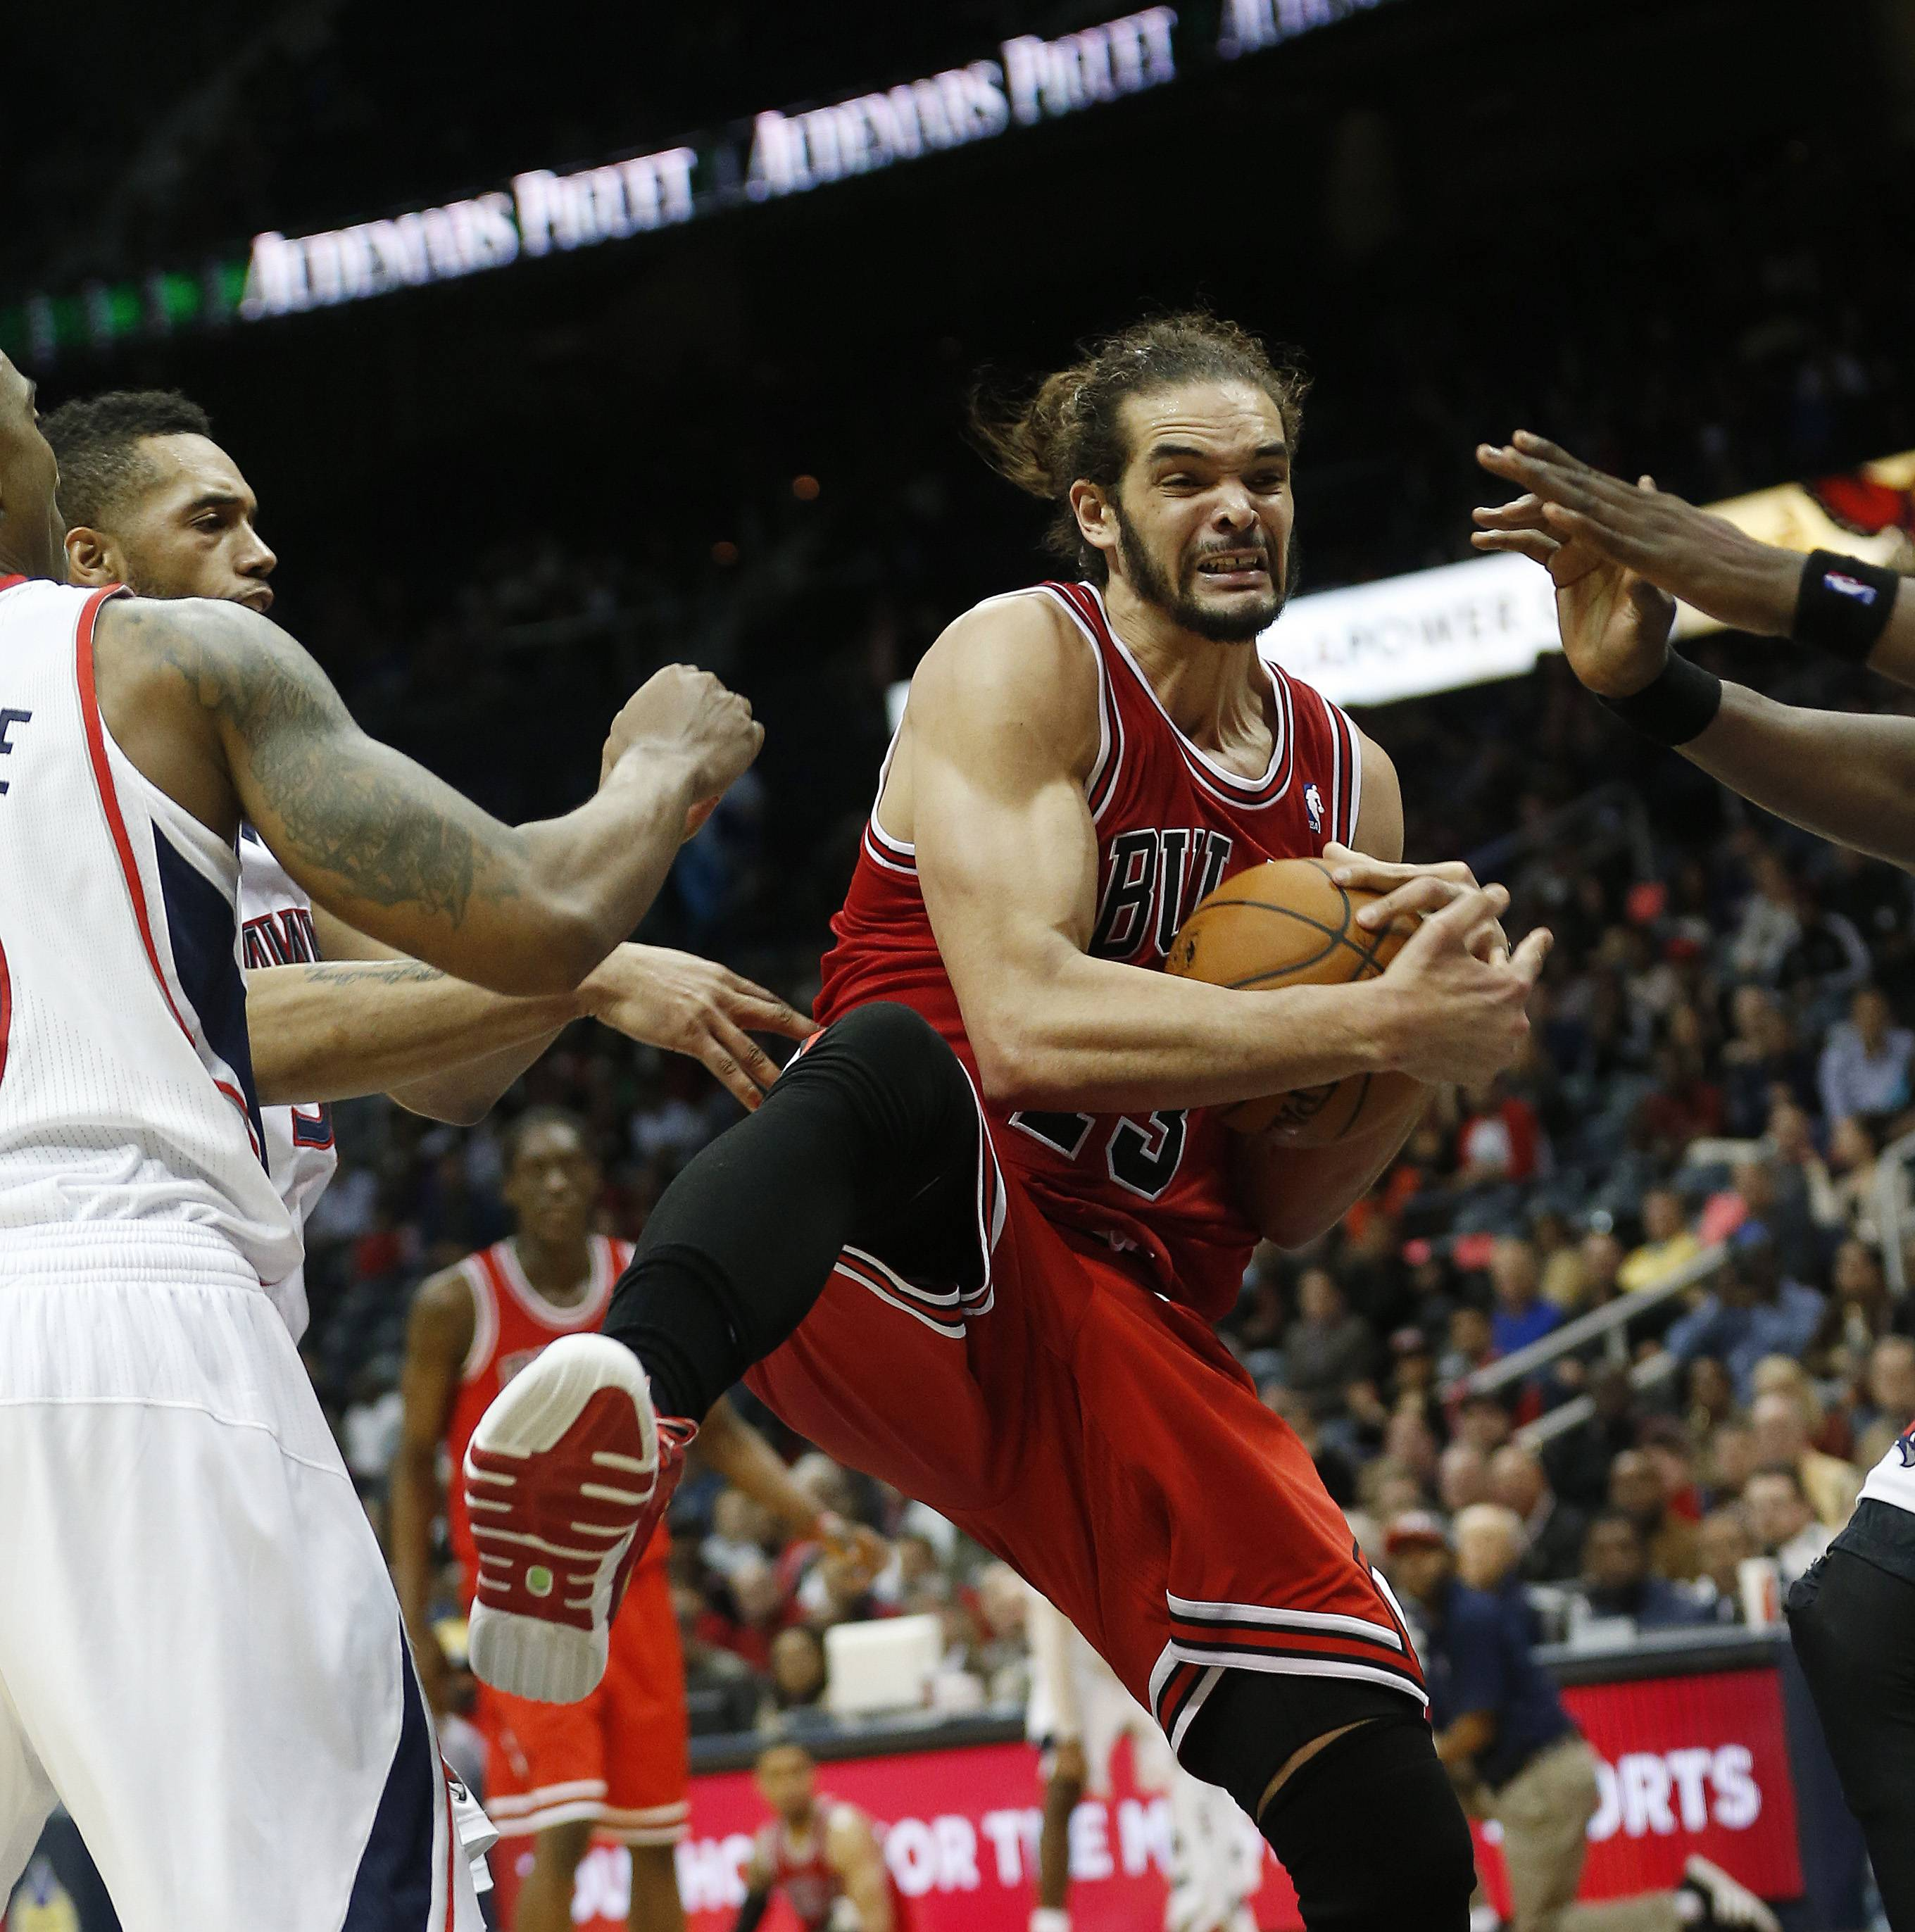 Bulls center Joakim Noah pulls down a rebound in the second half Tuesday night. Noah finished with 20 points and 12 rebounds in the Bulls' victory.